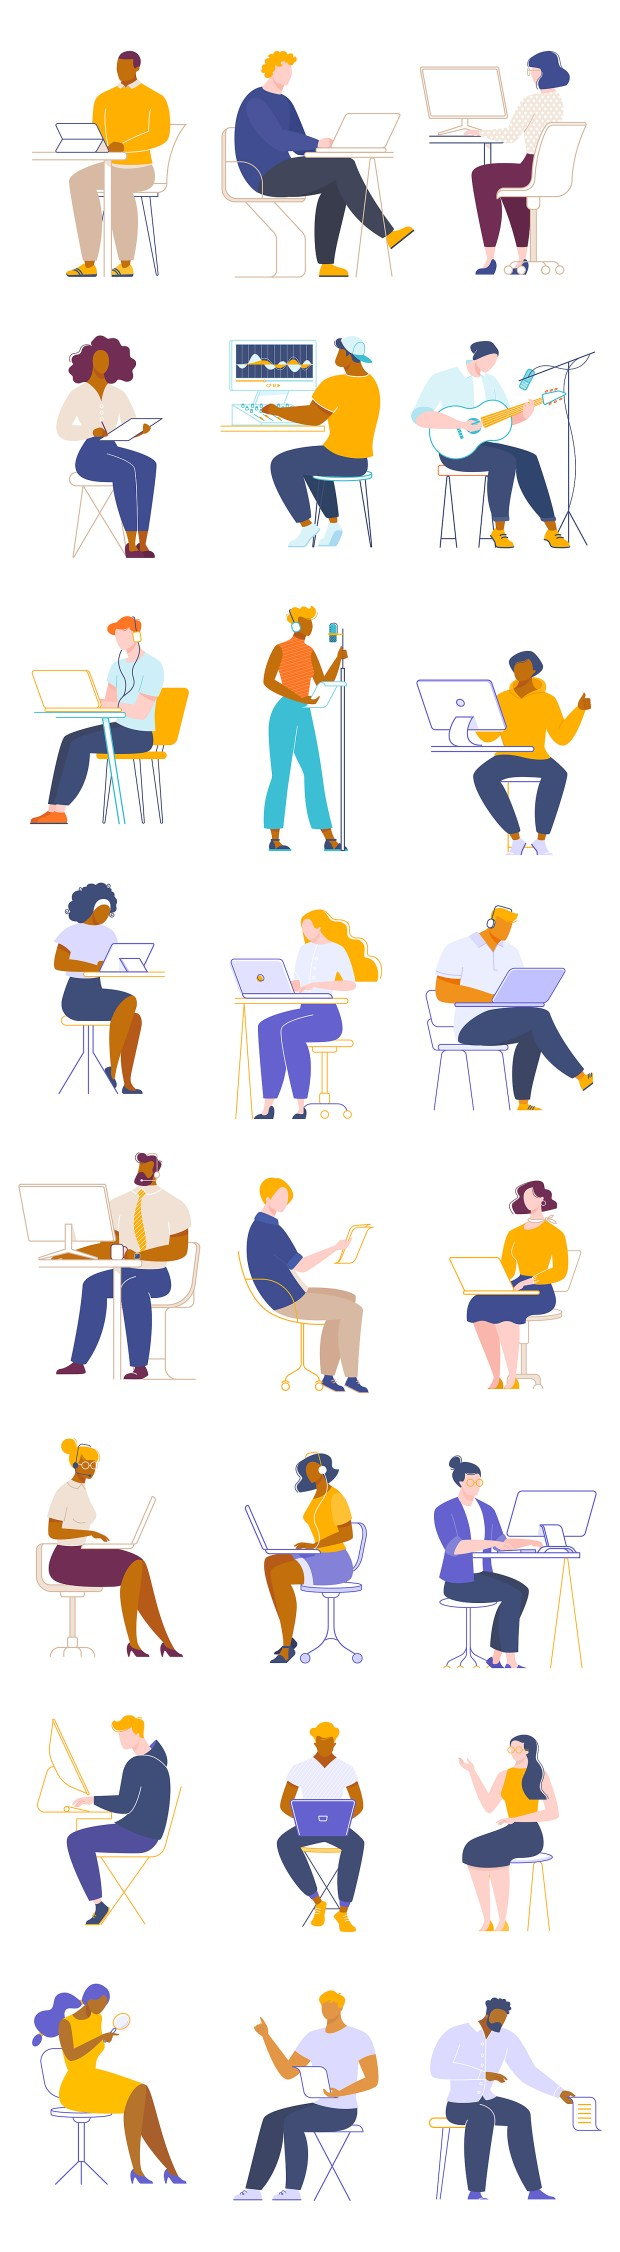 People Working Free Illustrations